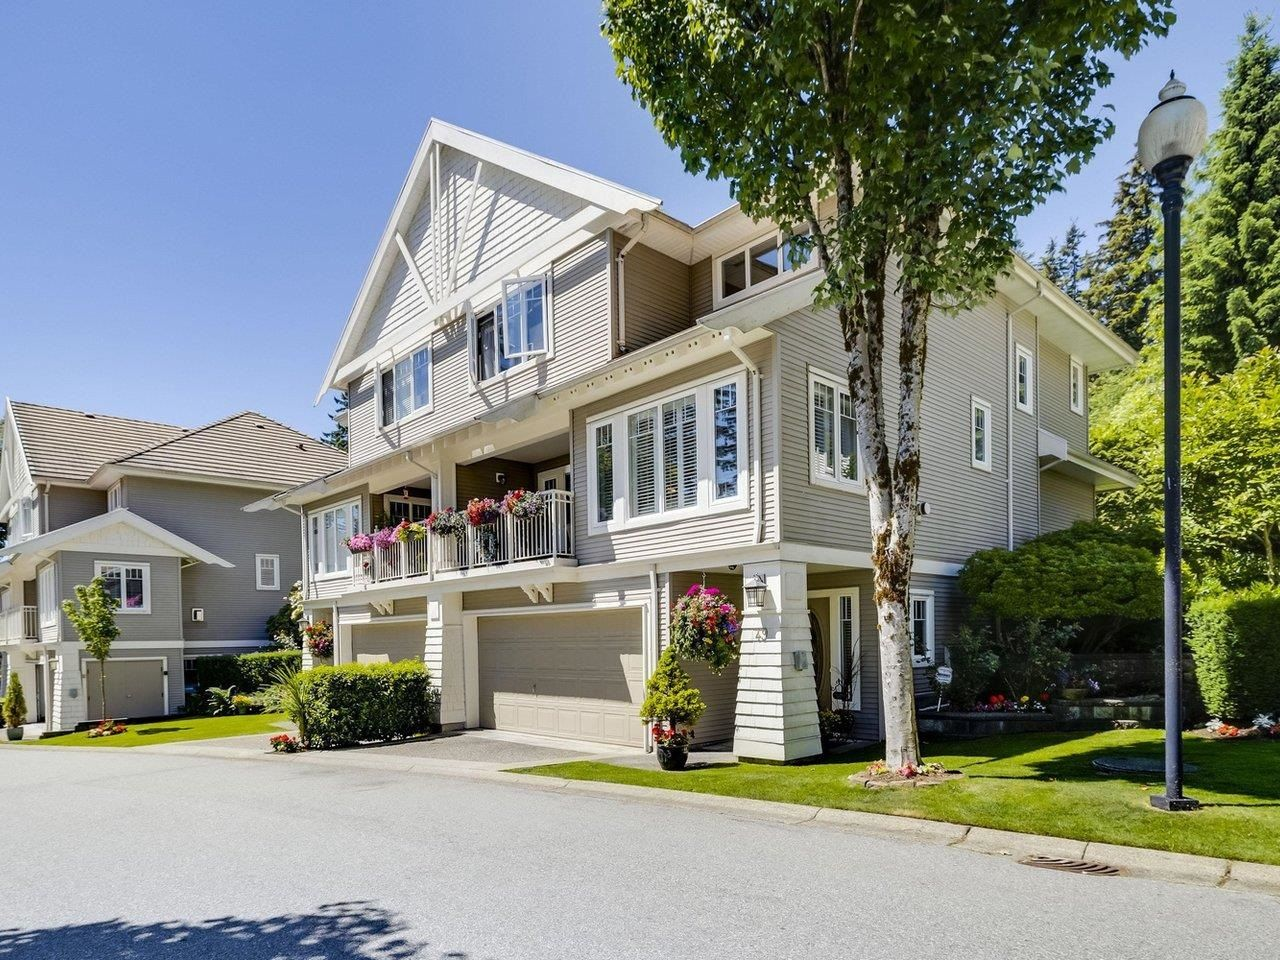 Main Photo: 49 3405 PLATEAU BOULEVARD in Coquitlam: Westwood Plateau Townhouse for sale : MLS®# R2610409